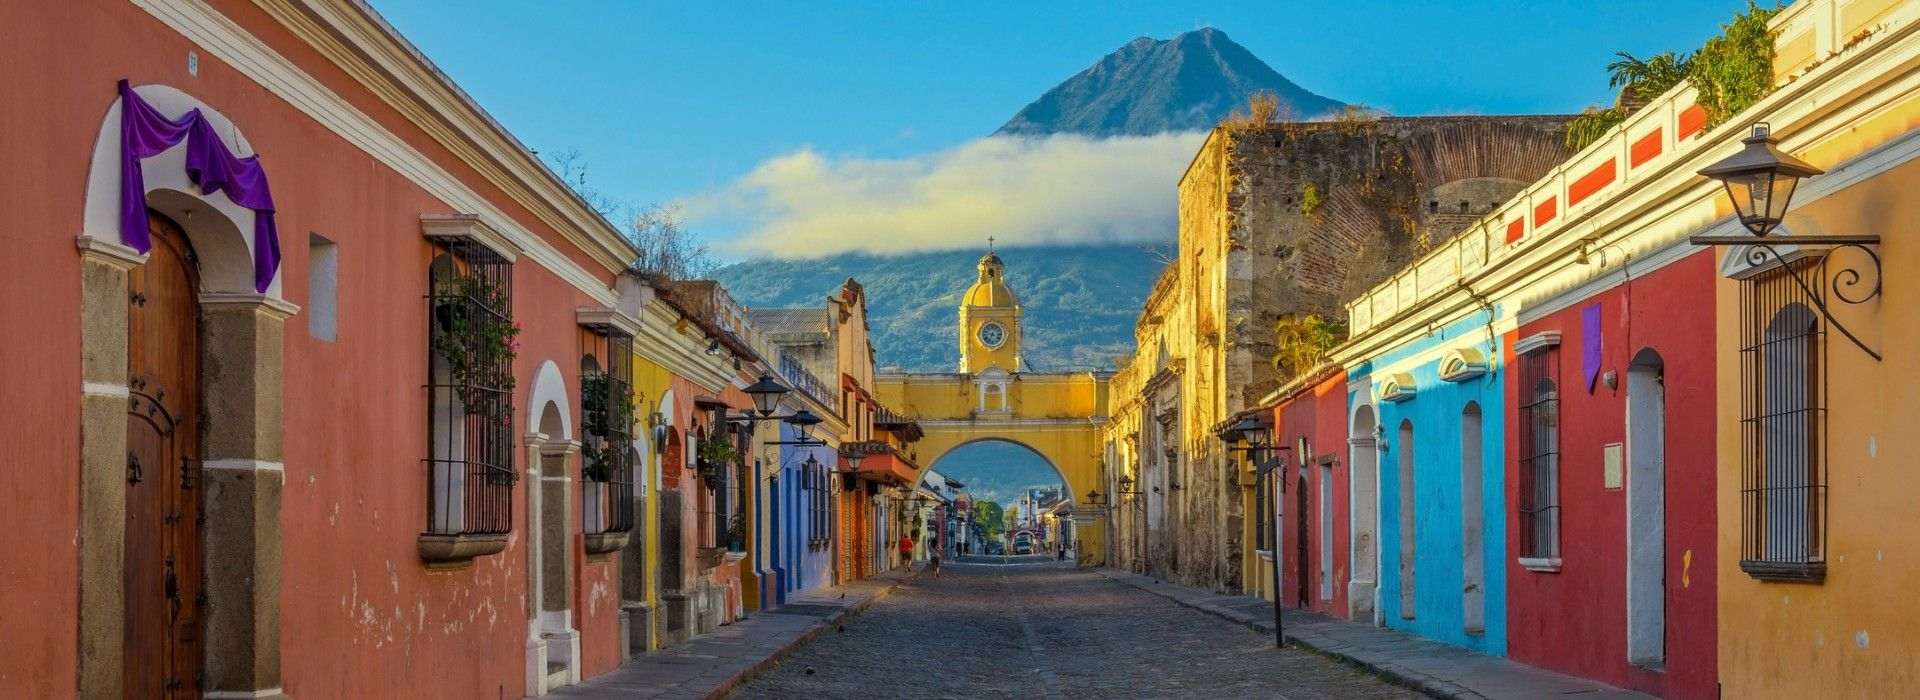 Adventure Tours in Central America